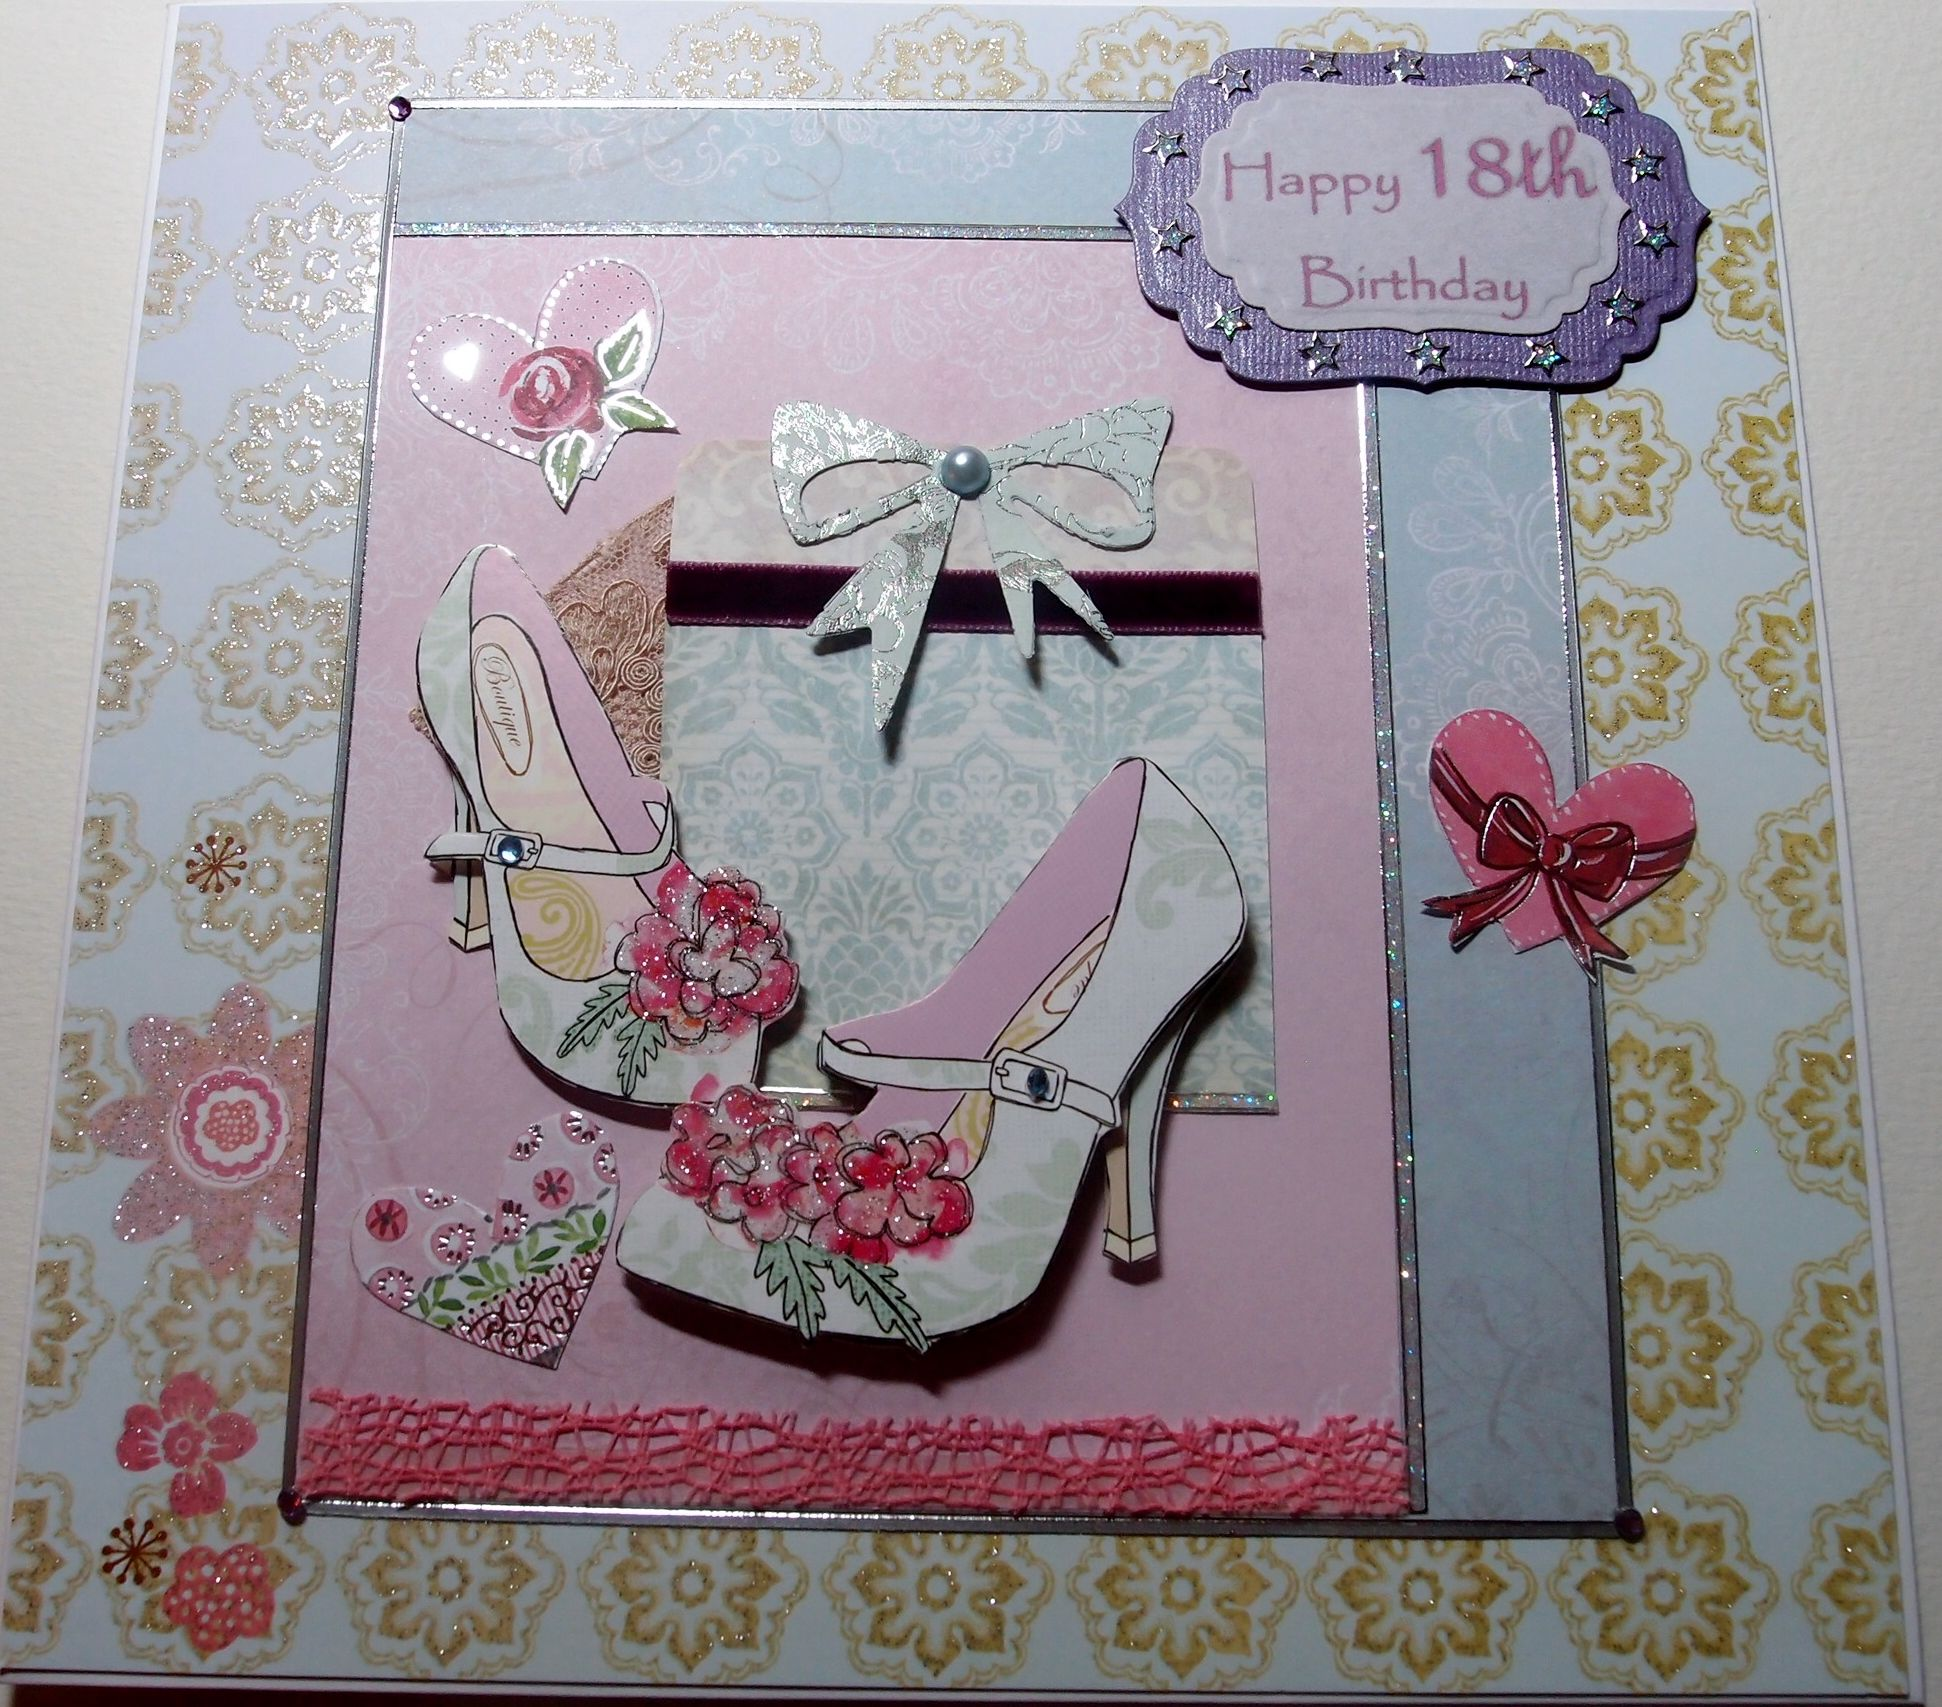 18th Birthday Cards, Birthday Cards For Women, Cards